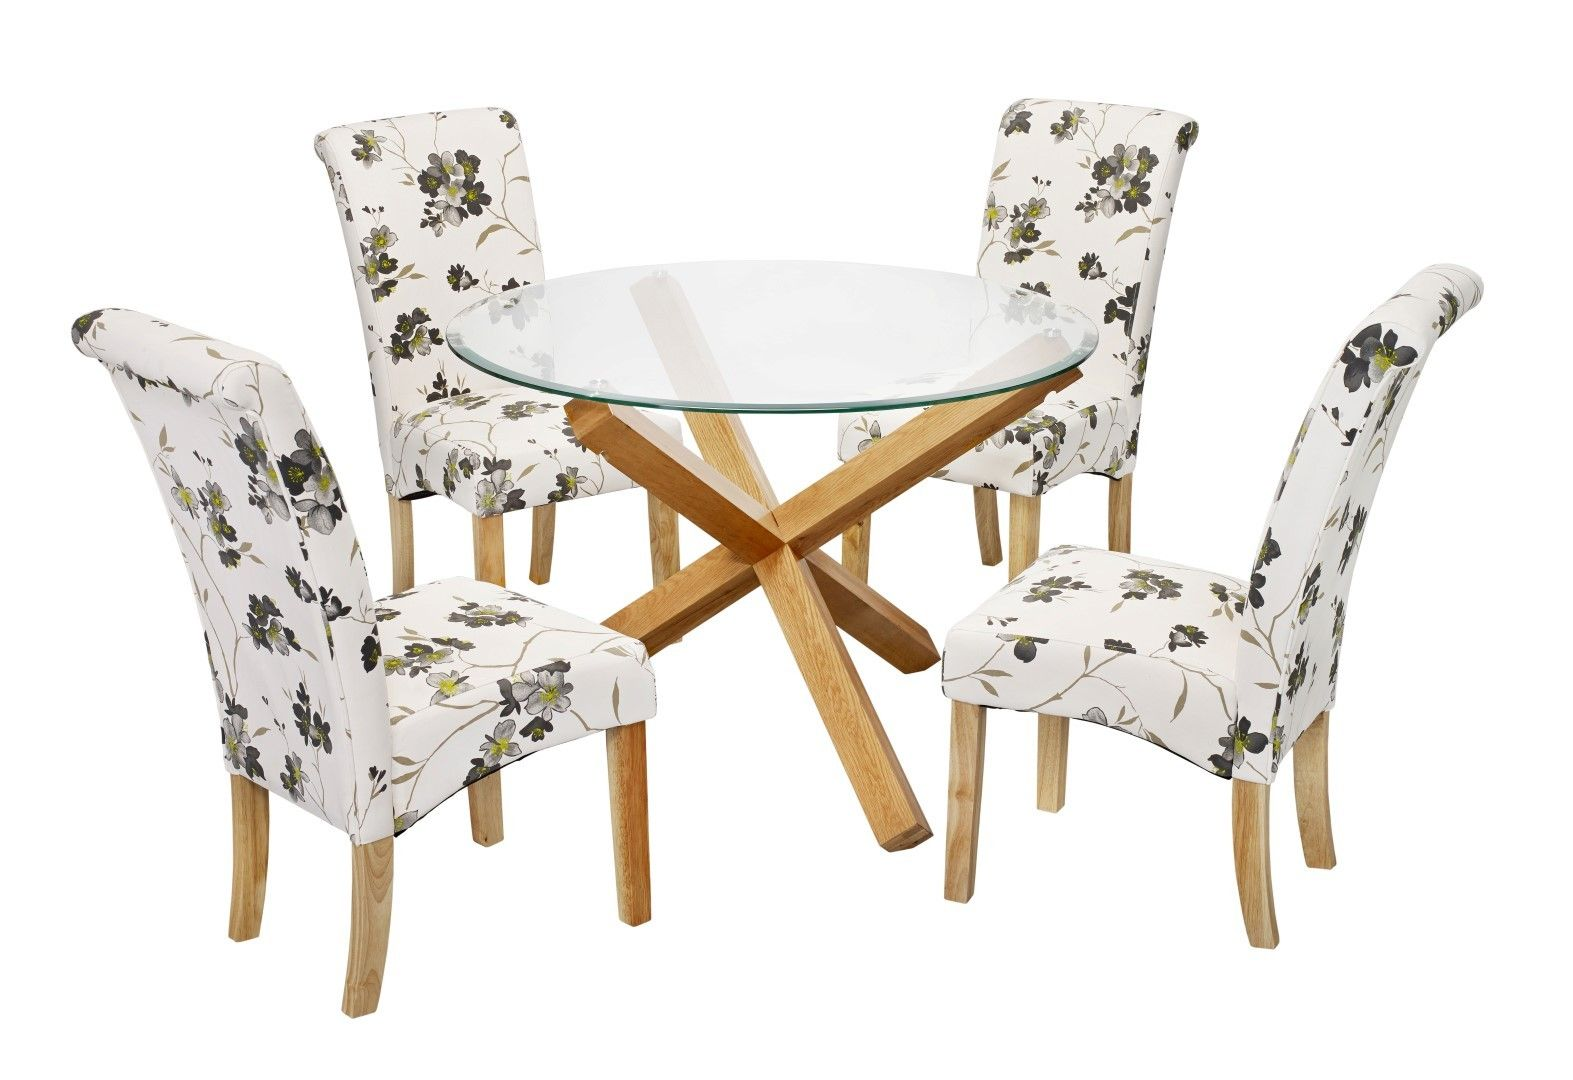 The Oporto Freya Dining Set is a glass top round dining table with solid oak leg frame, featuring four matching chairs. The chairs which come with this set are a contemporary chair with a stylish look and high back design with padded seat - http://www.furn-on.com/oporto-freya-dining-set.html